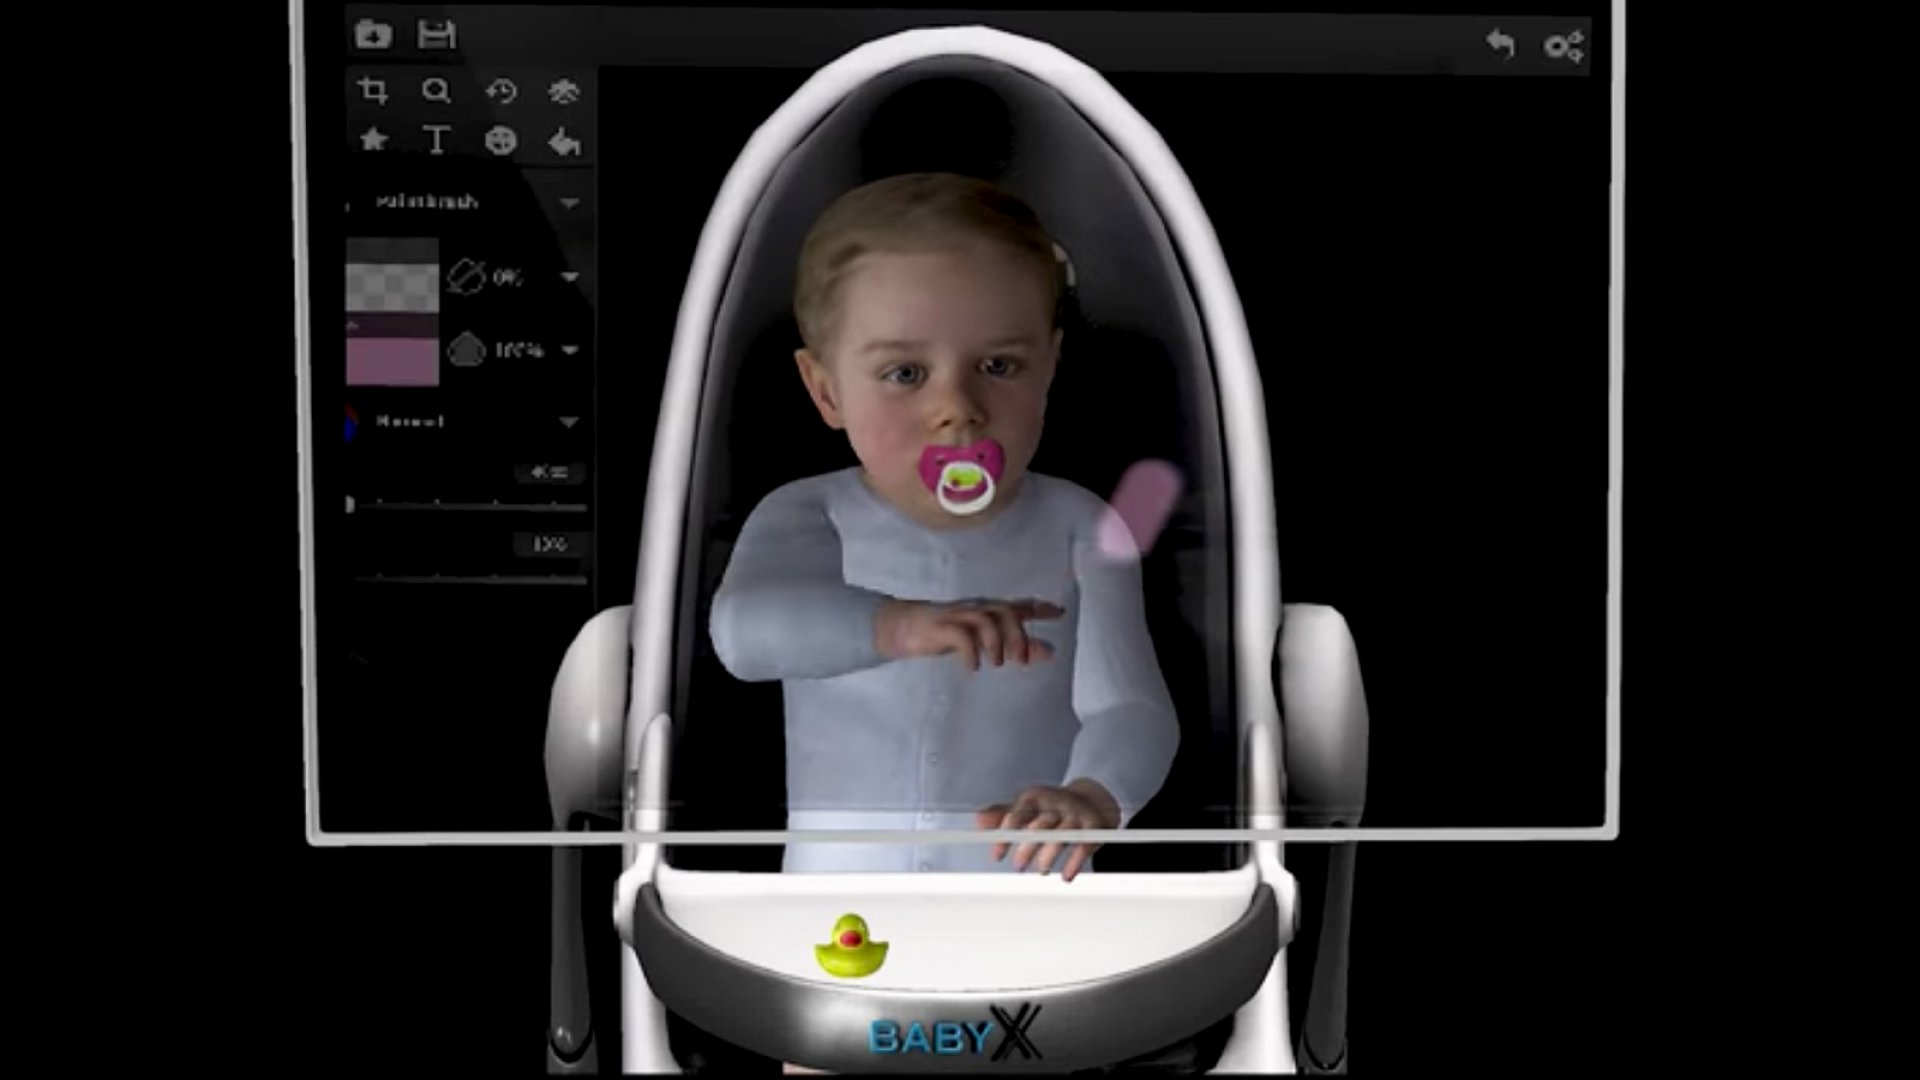 This Creepy Baby AI Character Can Talk, Read, and Emulate Emotions